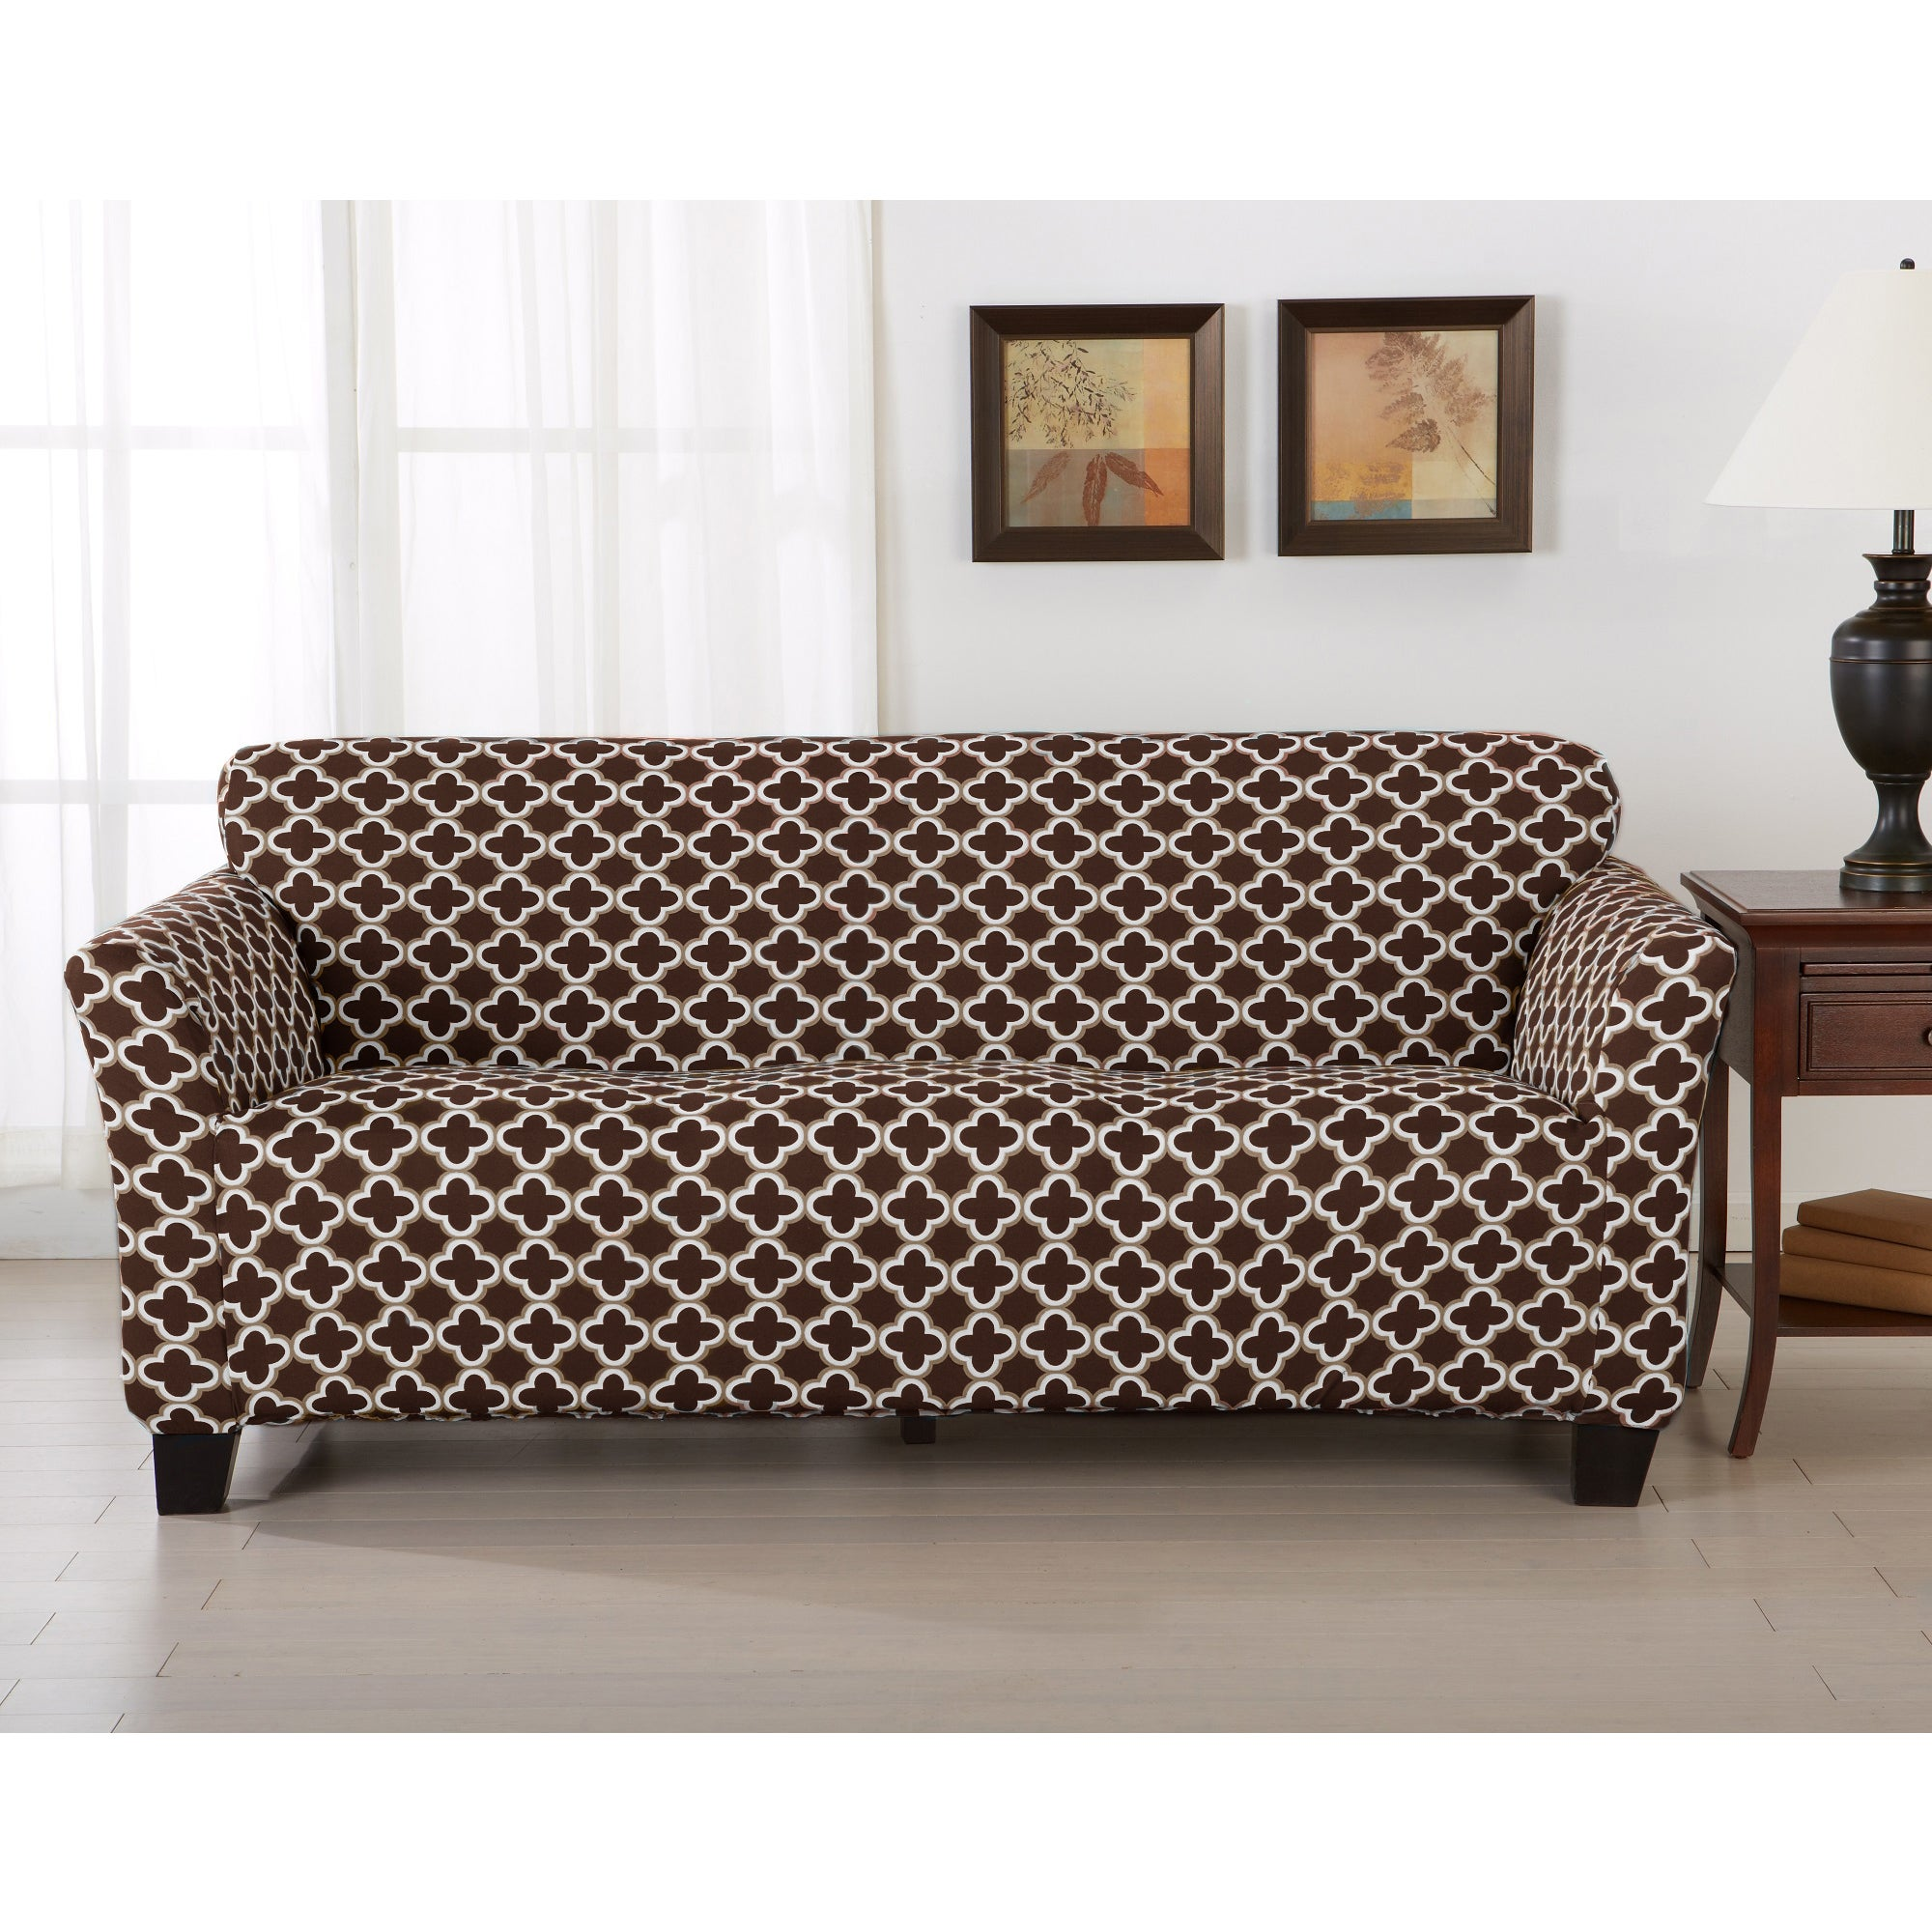 Shop Home Fashion Designs Brenna Collection Stretch Form Fitted Sofa